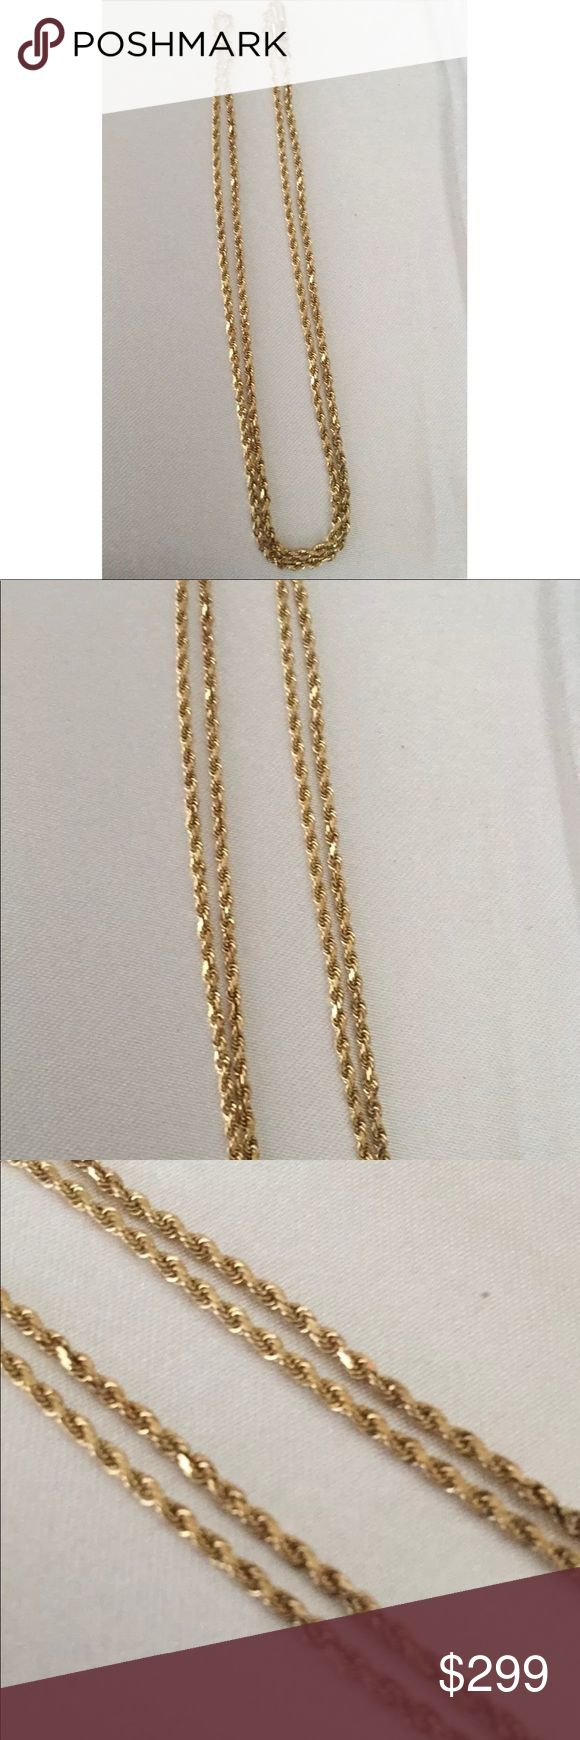 "14k Solid genuine yellow Gold Rope chain 19"" 14k Solid genuine yellow Gold Rope chain 19"" Necklace 5.6 grams with safety clasp 2mm wide Excellent condition weighs 5.6 grams Vintage Jewelry Necklaces"